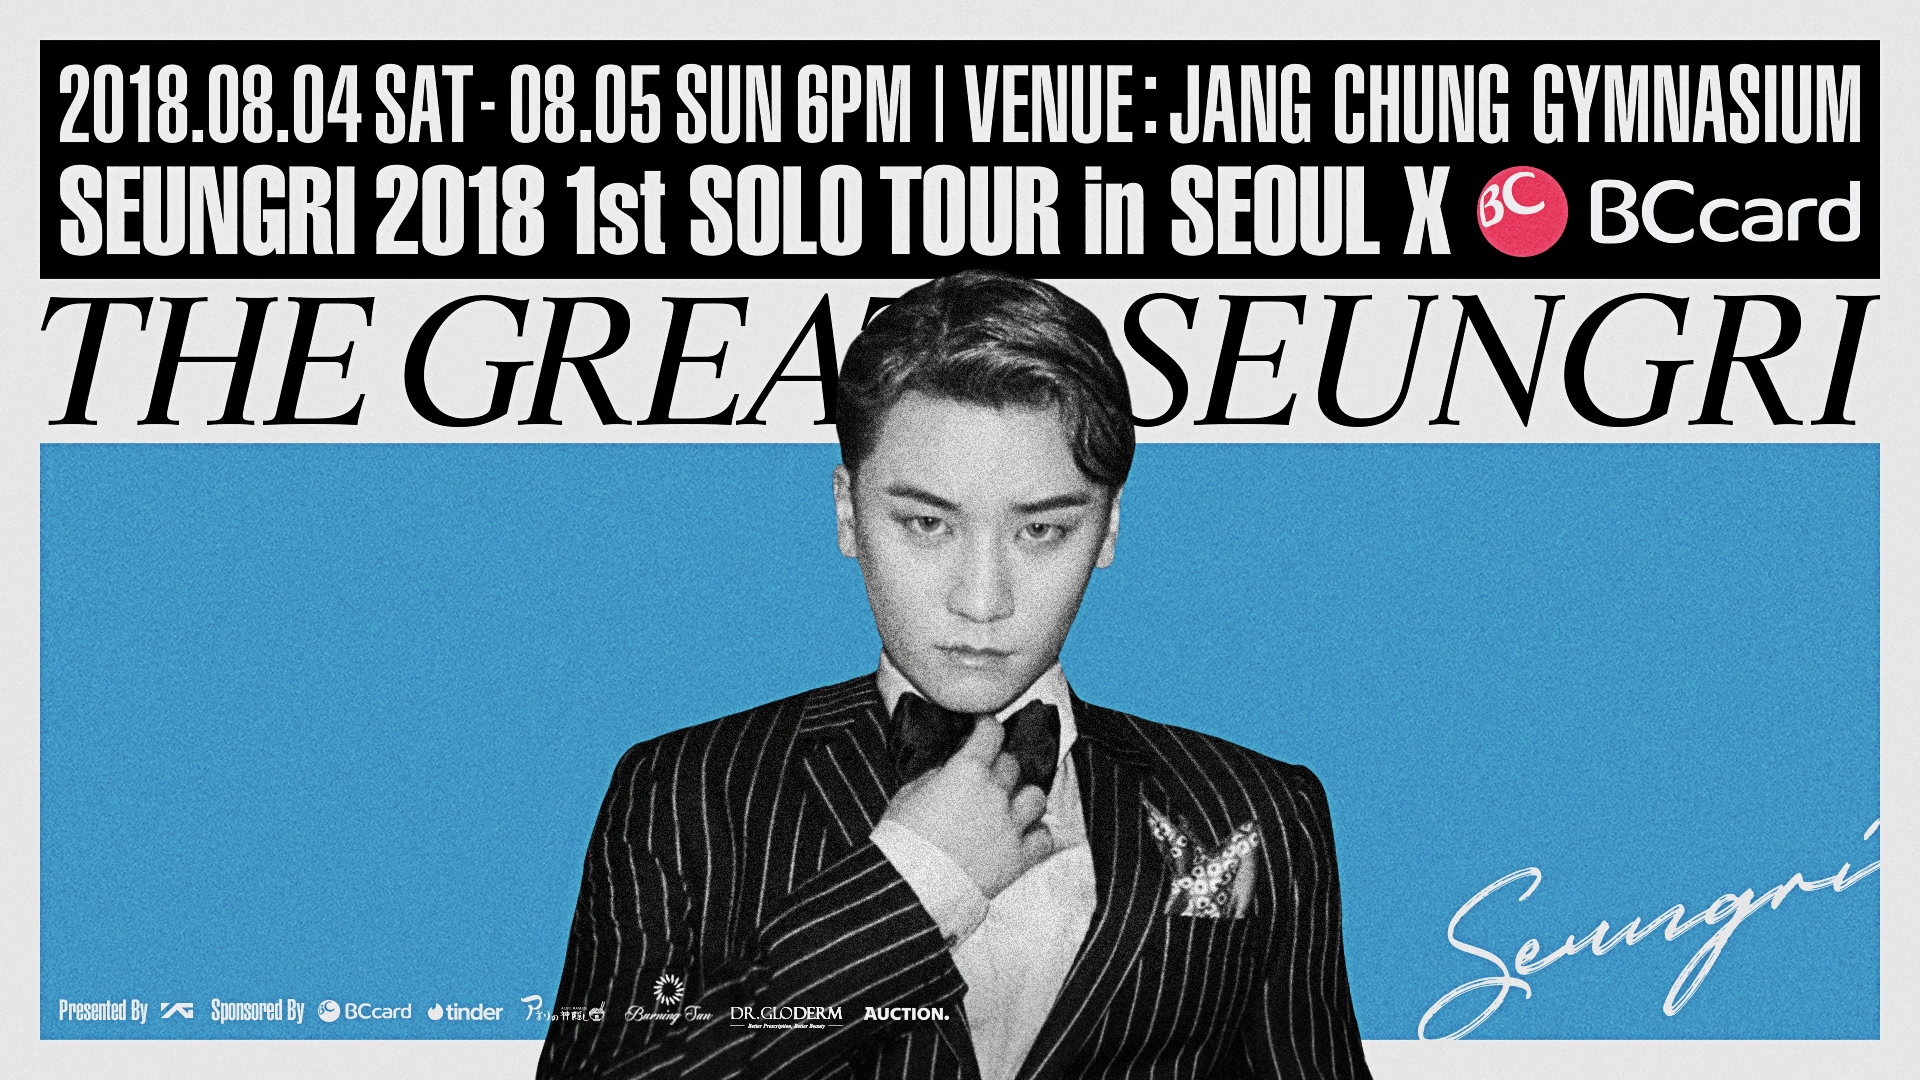 SEUNGRI - 2018 1st SOLO TOUR [THE GREAT SEUNGRI] in SEOUL